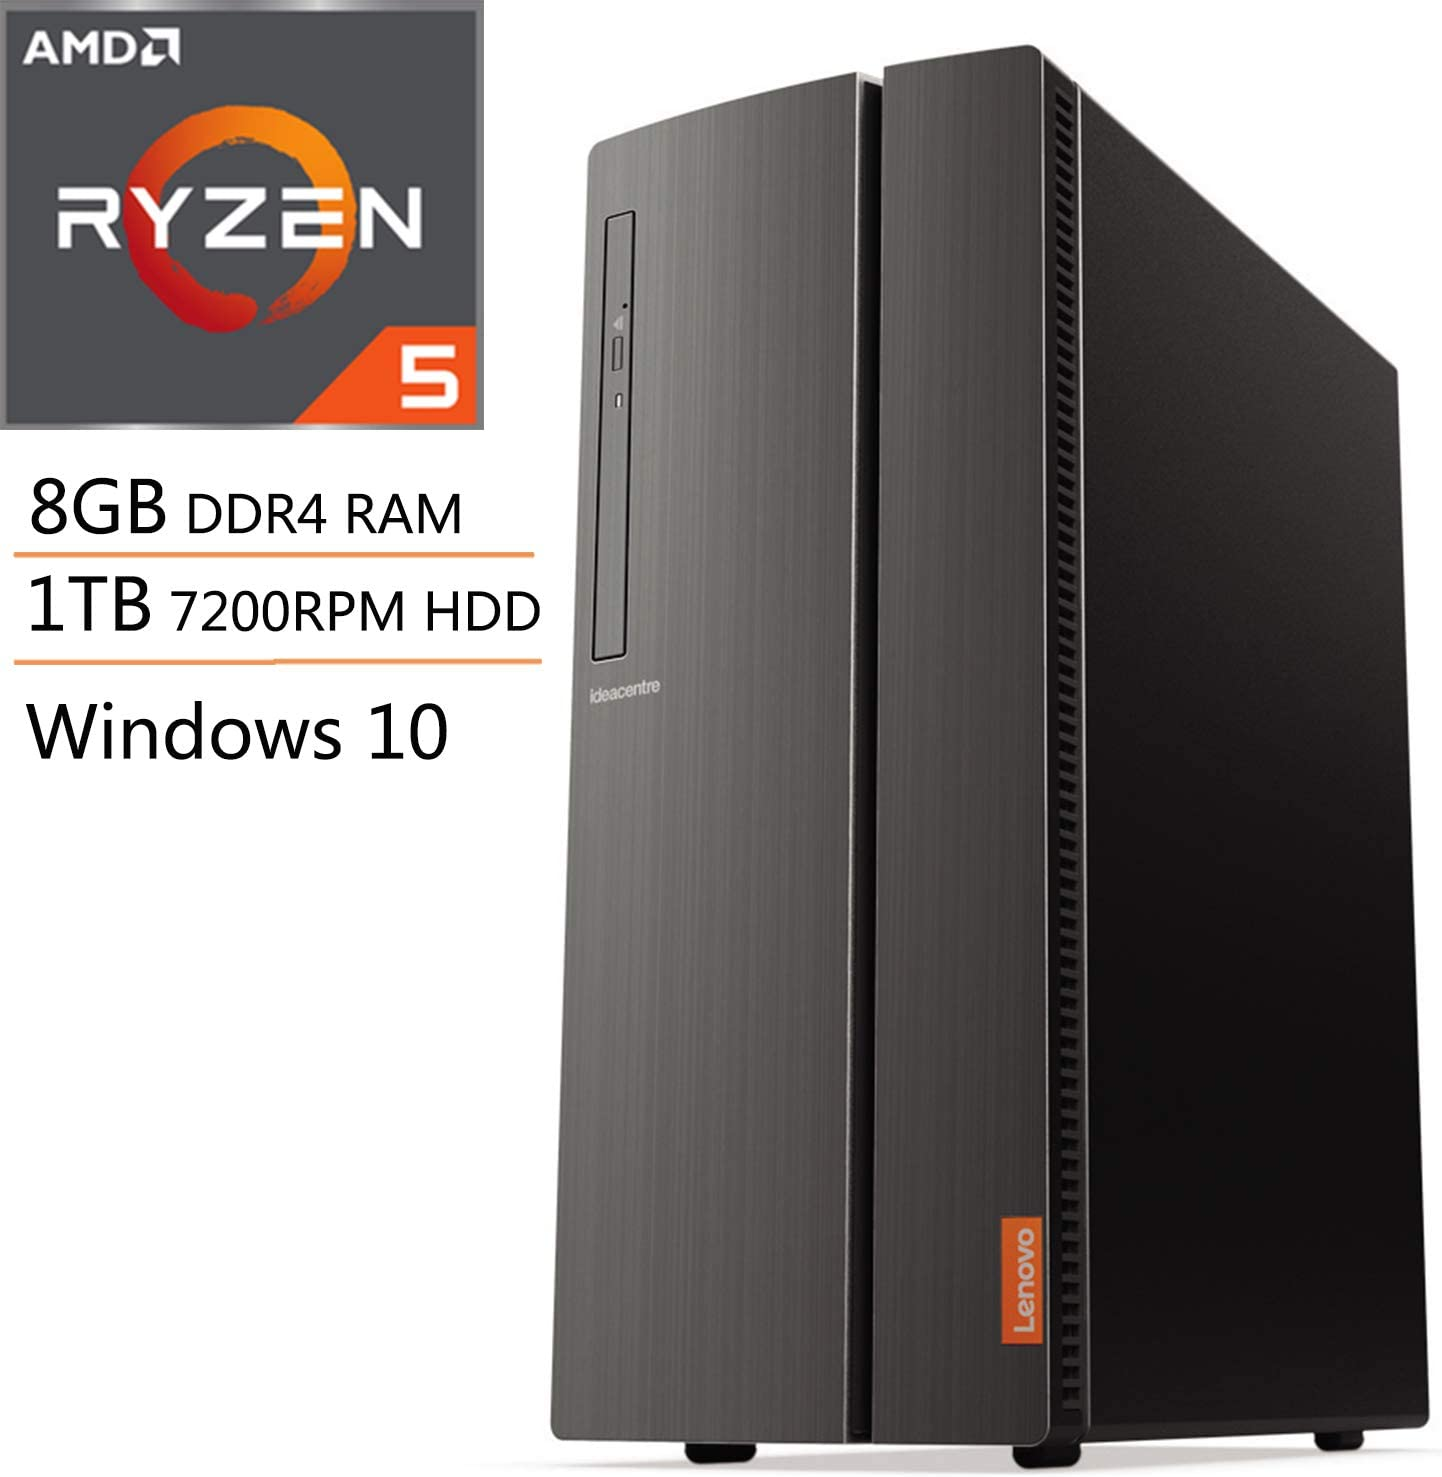 Lenovo IdeaCentre 510A Desktop Computer, Quad-Core AMD Ryzen 5 3400G up to 4.2GHz (Beats i7-8705G), 8GB DDR4 RAM, 1TB 7200RPM HDD, DVDRW, AC WiFi, 7-in-1 Card Reader, Windows 10, iPuzzle Mouse Pad